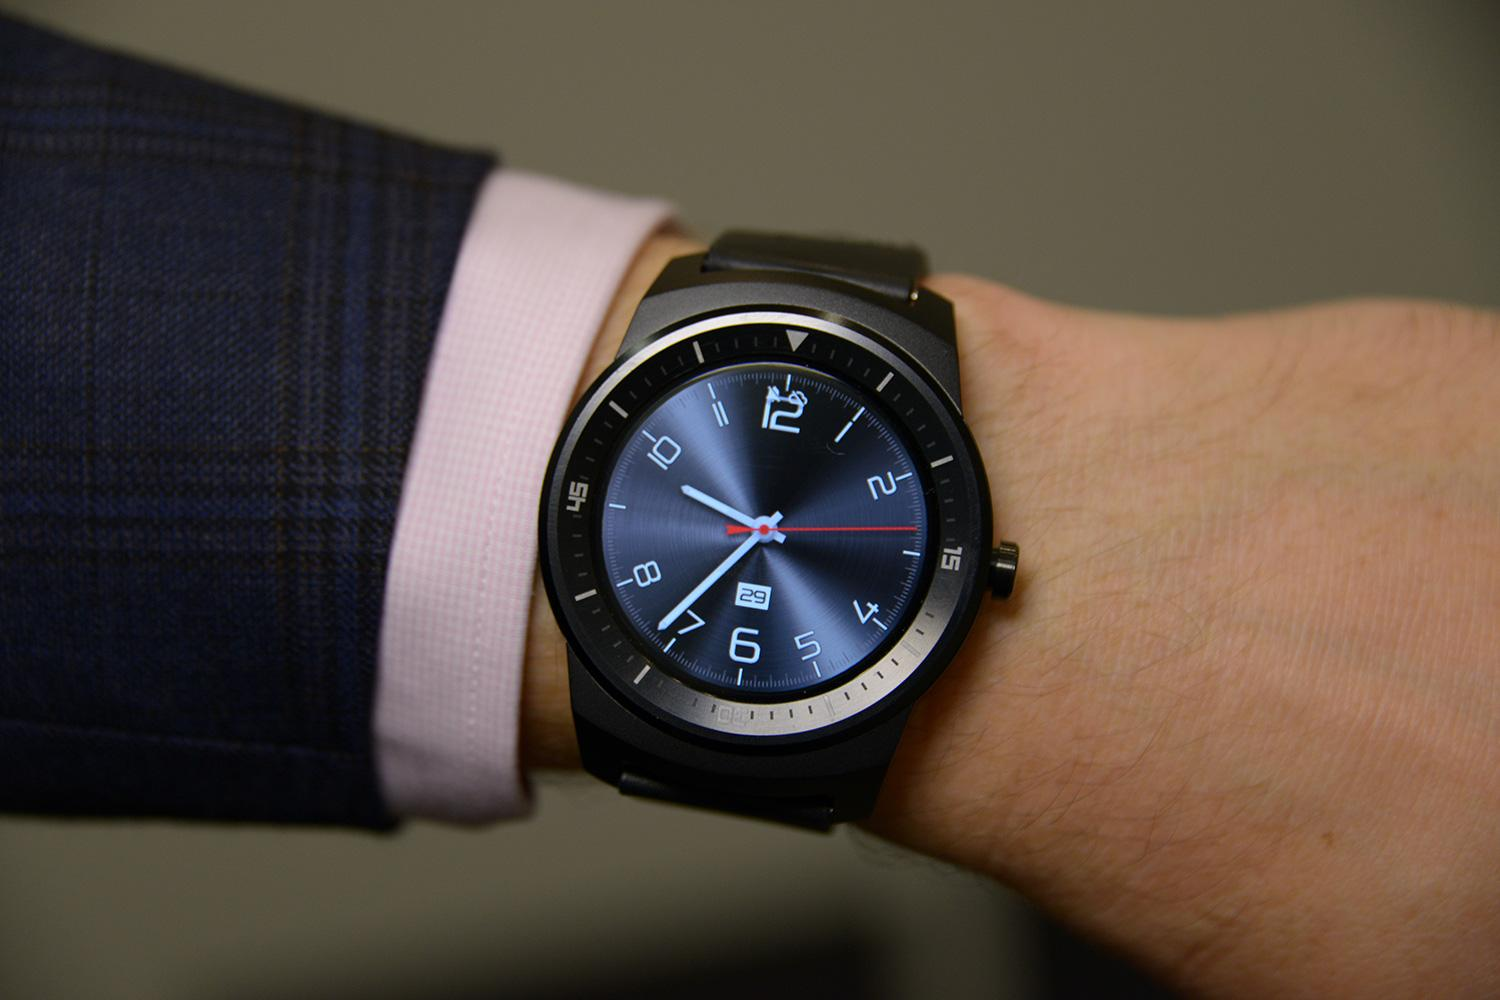 lg g watch r review above the ankles